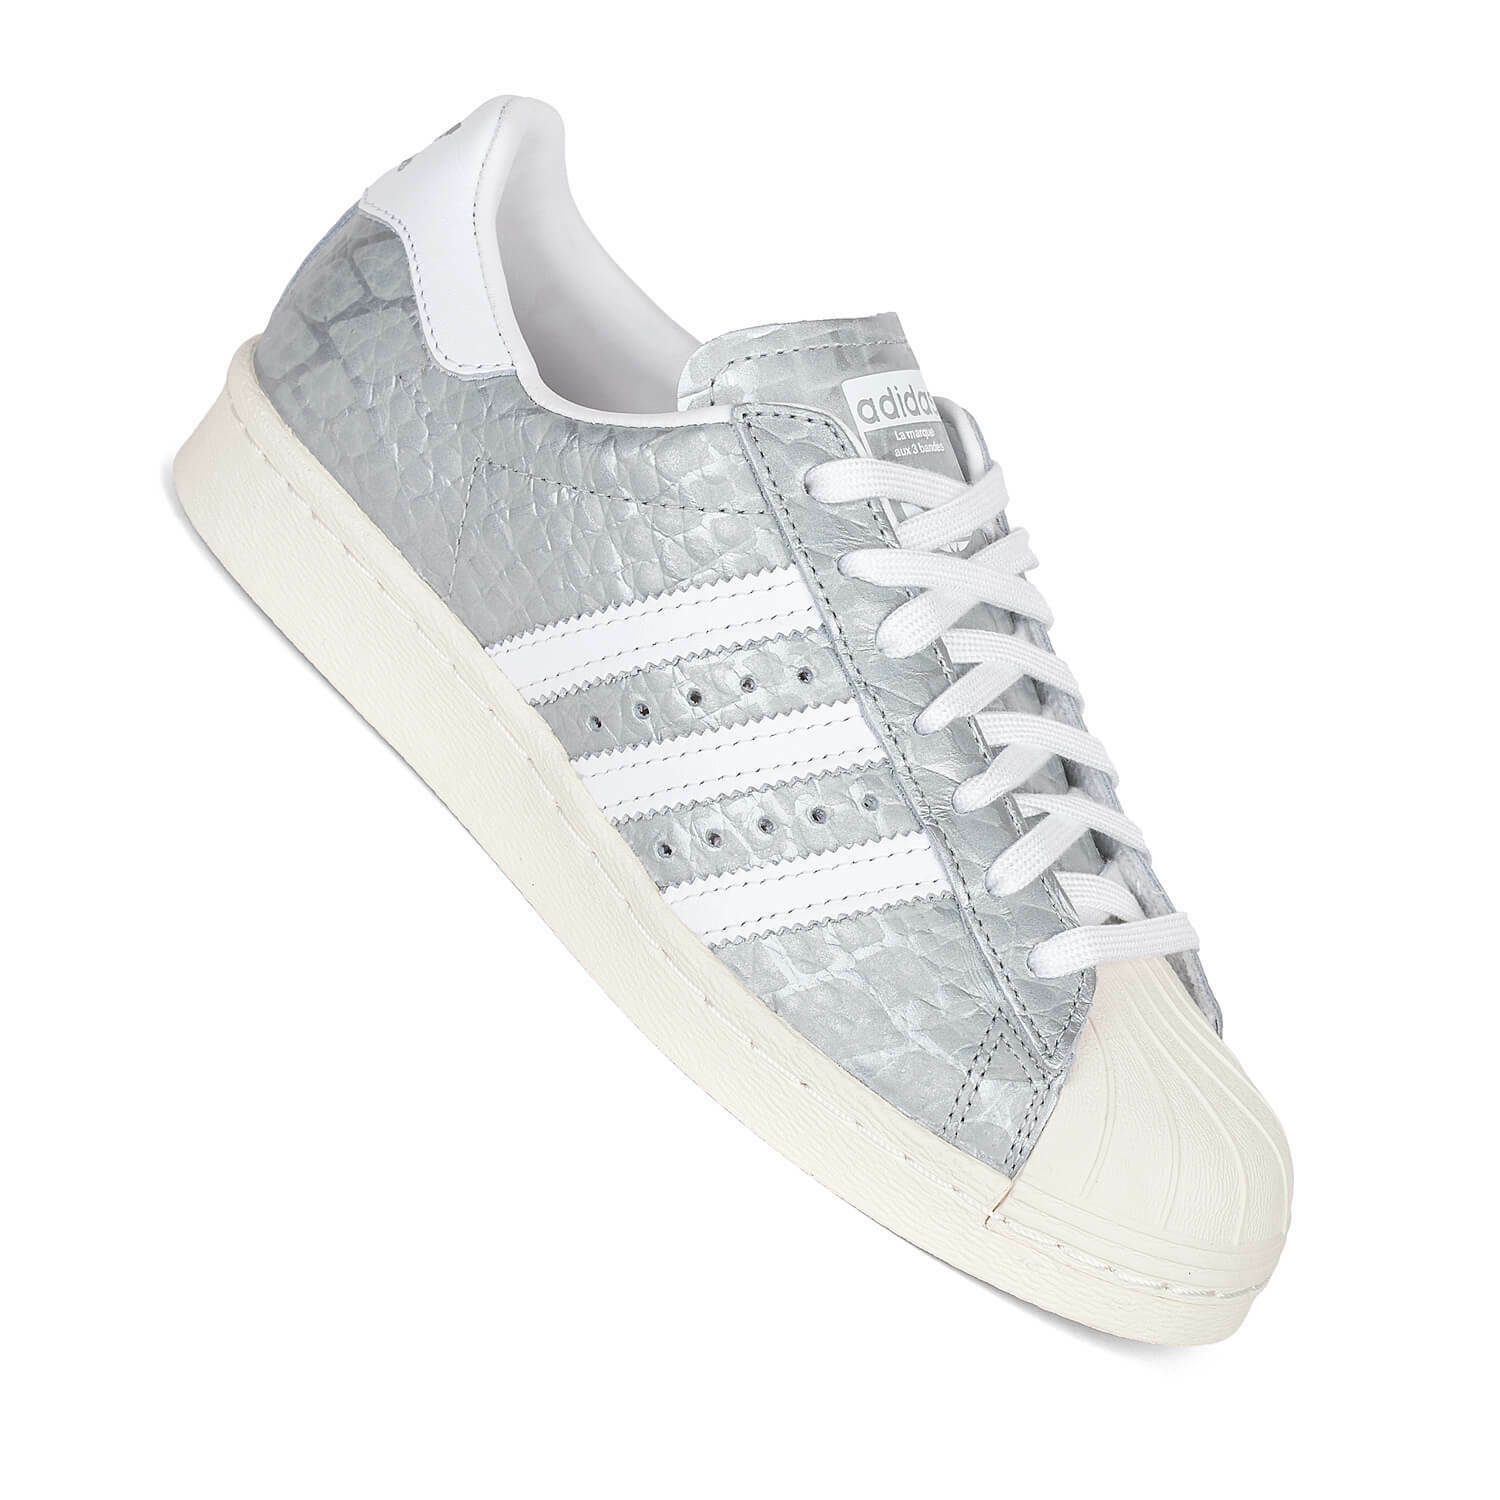 Adidas Superstar 80s Metallic Silver S76415 Ladies Sneakers in Cuero de Culebra